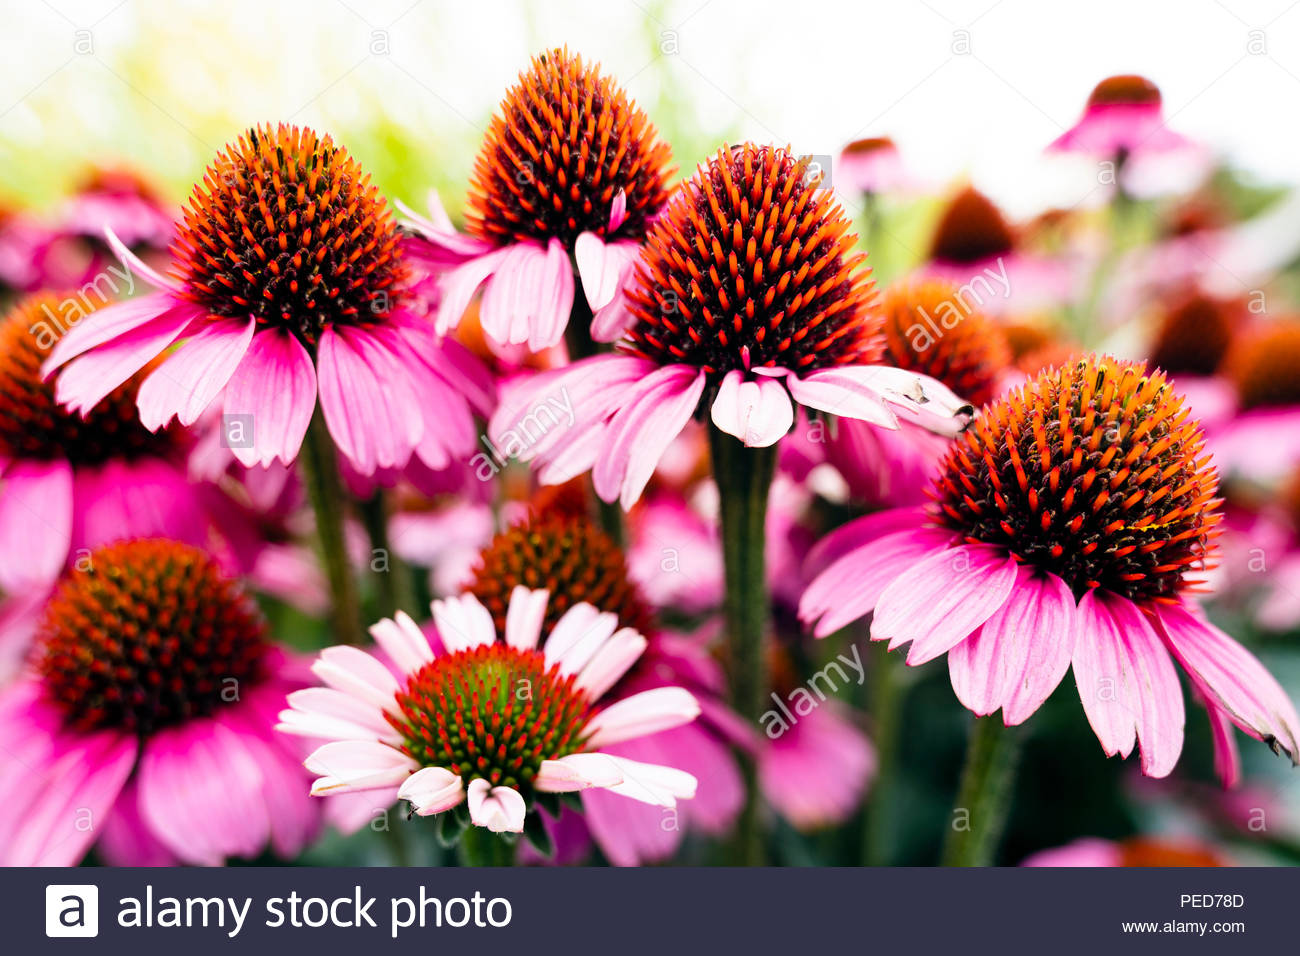 Echinacea flowers, UK. Coneflower garden plant. Stock Photo